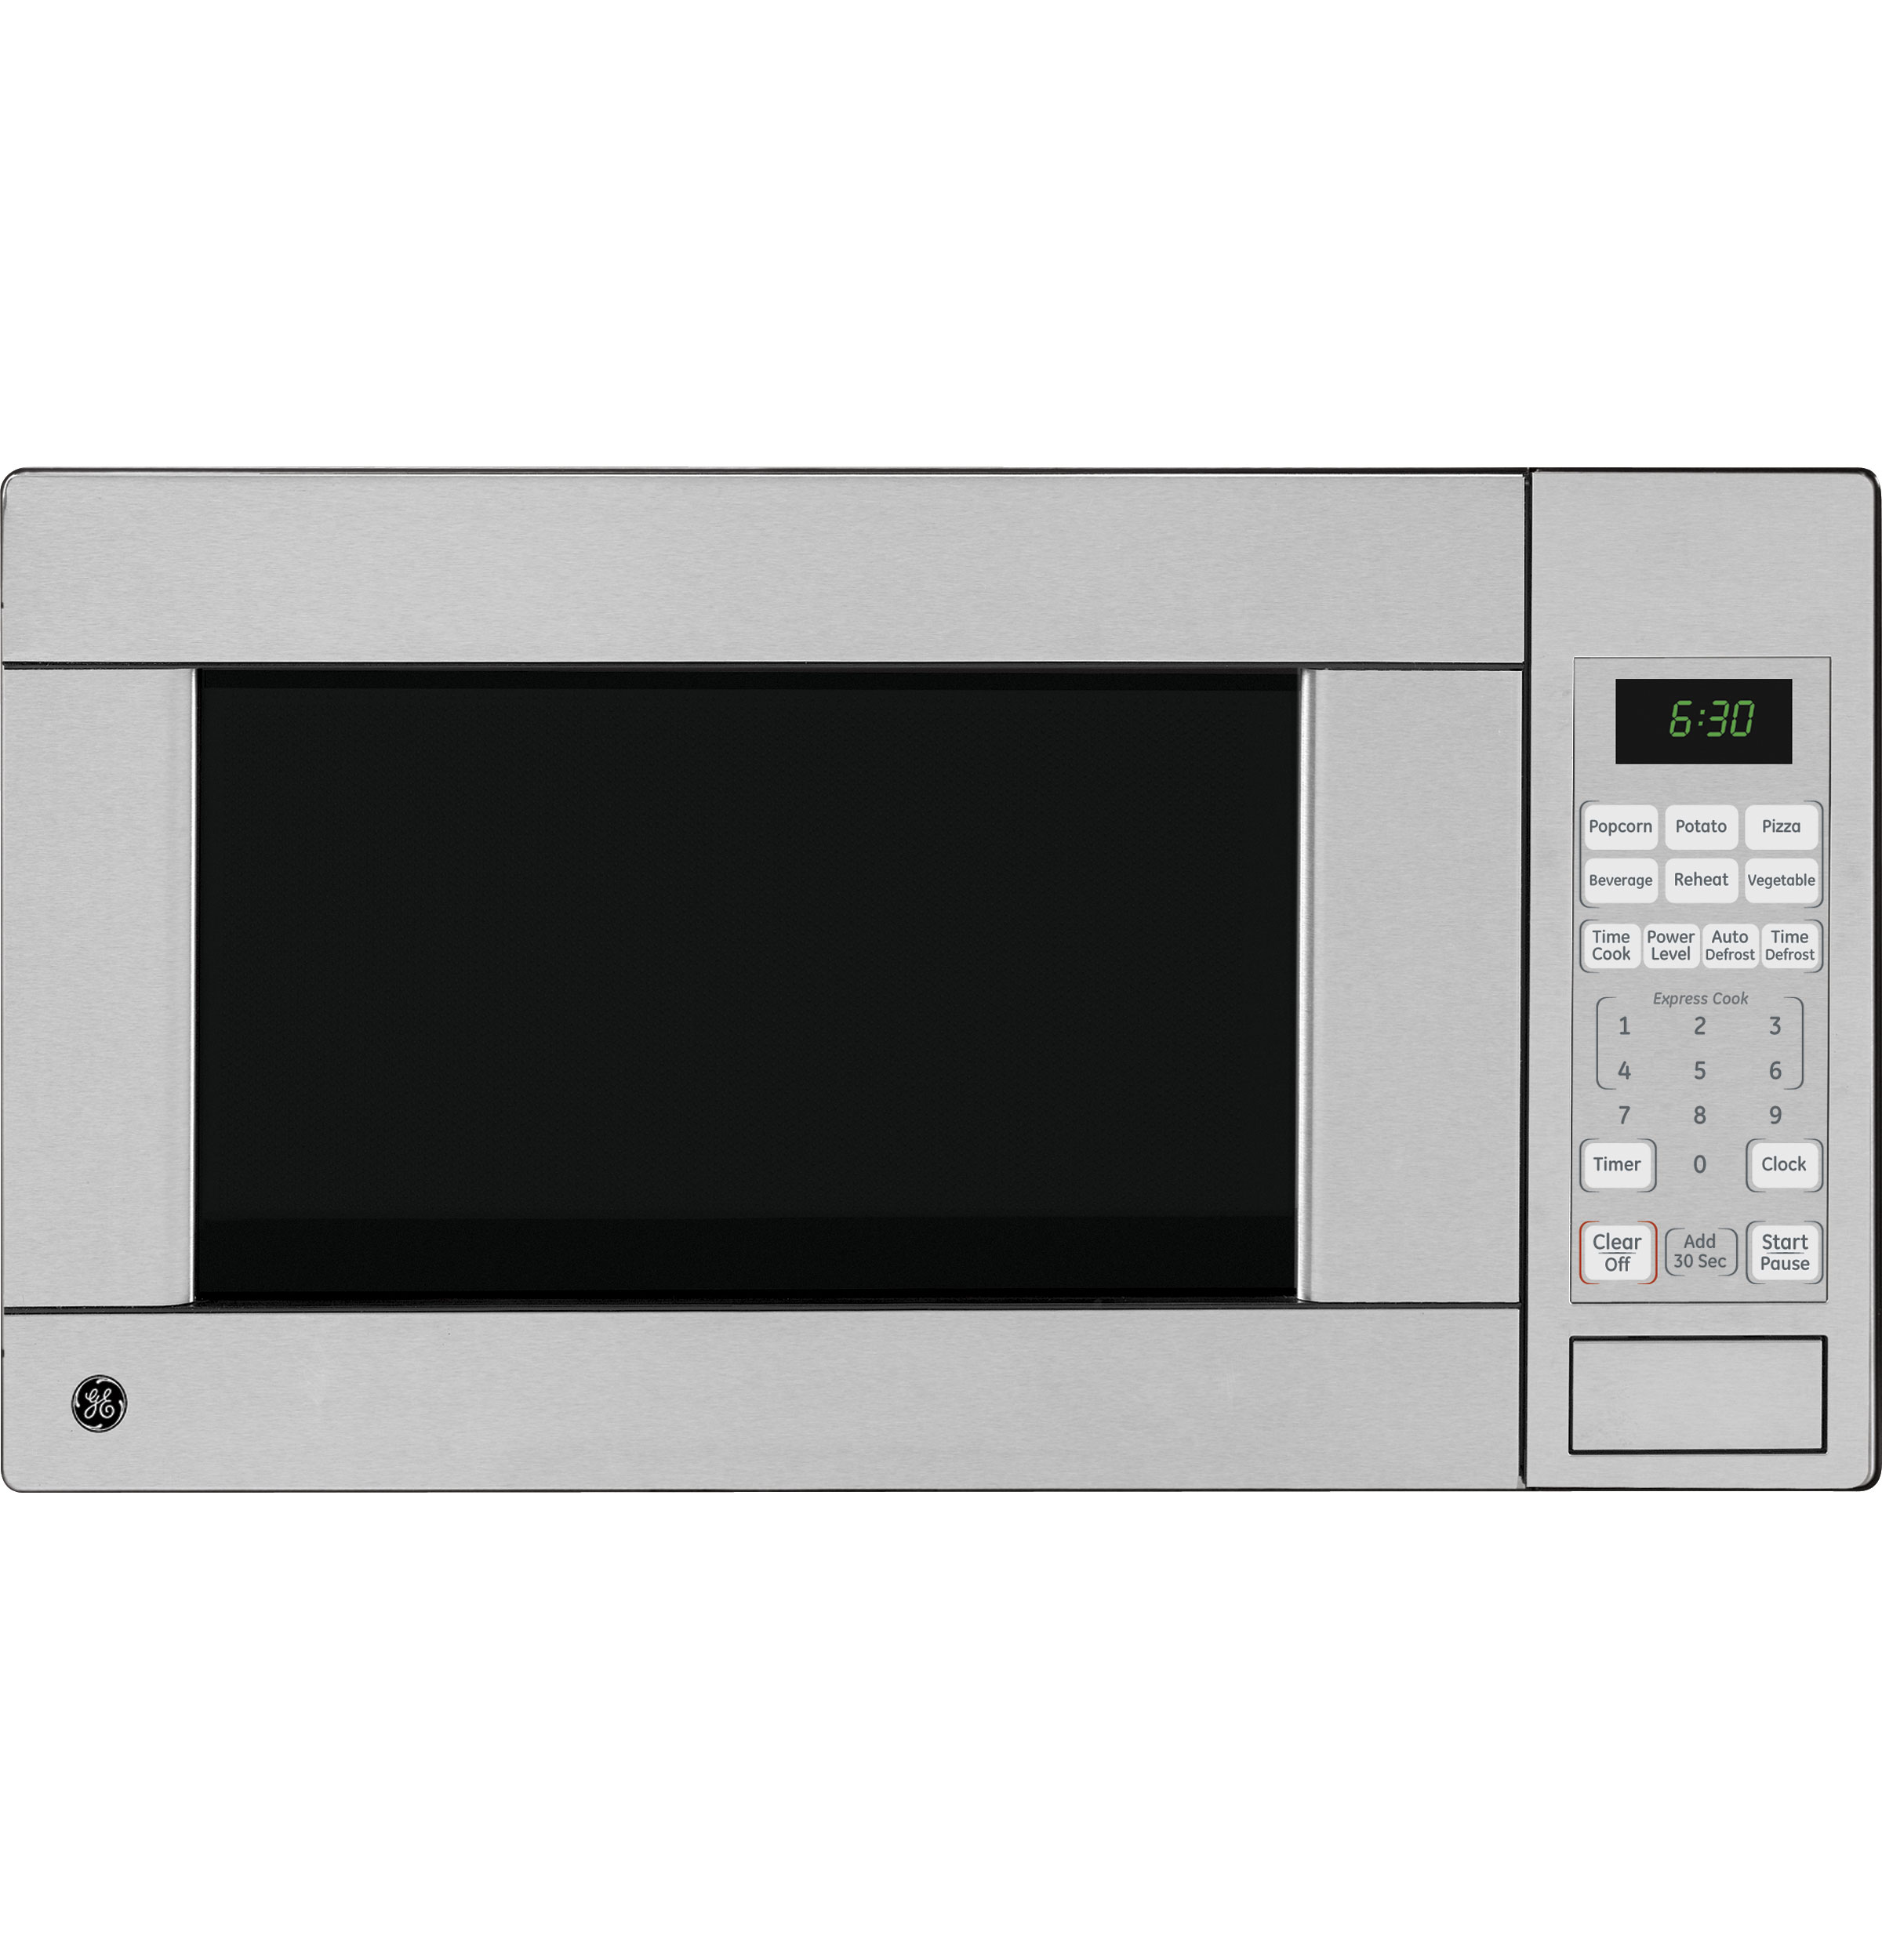 Ge 174 1 1 Cu Ft Capacity Countertop Microwave Oven